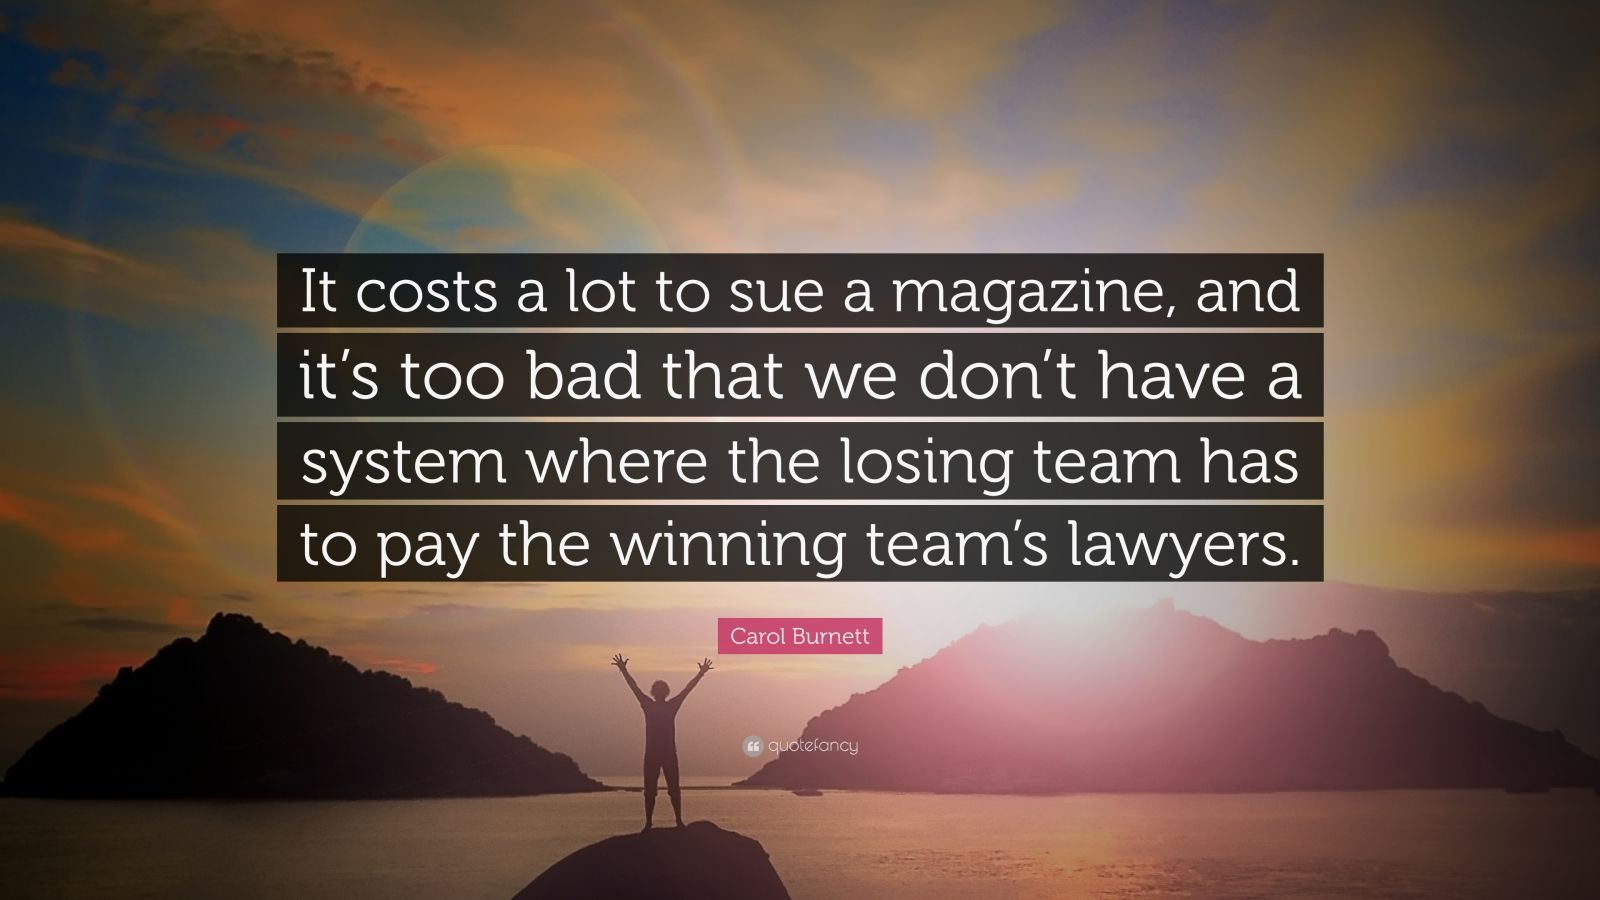 """Carol Burnett Quote: """"It costs a lot to sue a magazine, and it's too bad that we don't have a system where the losing team has to pay the winning team's lawyers."""""""